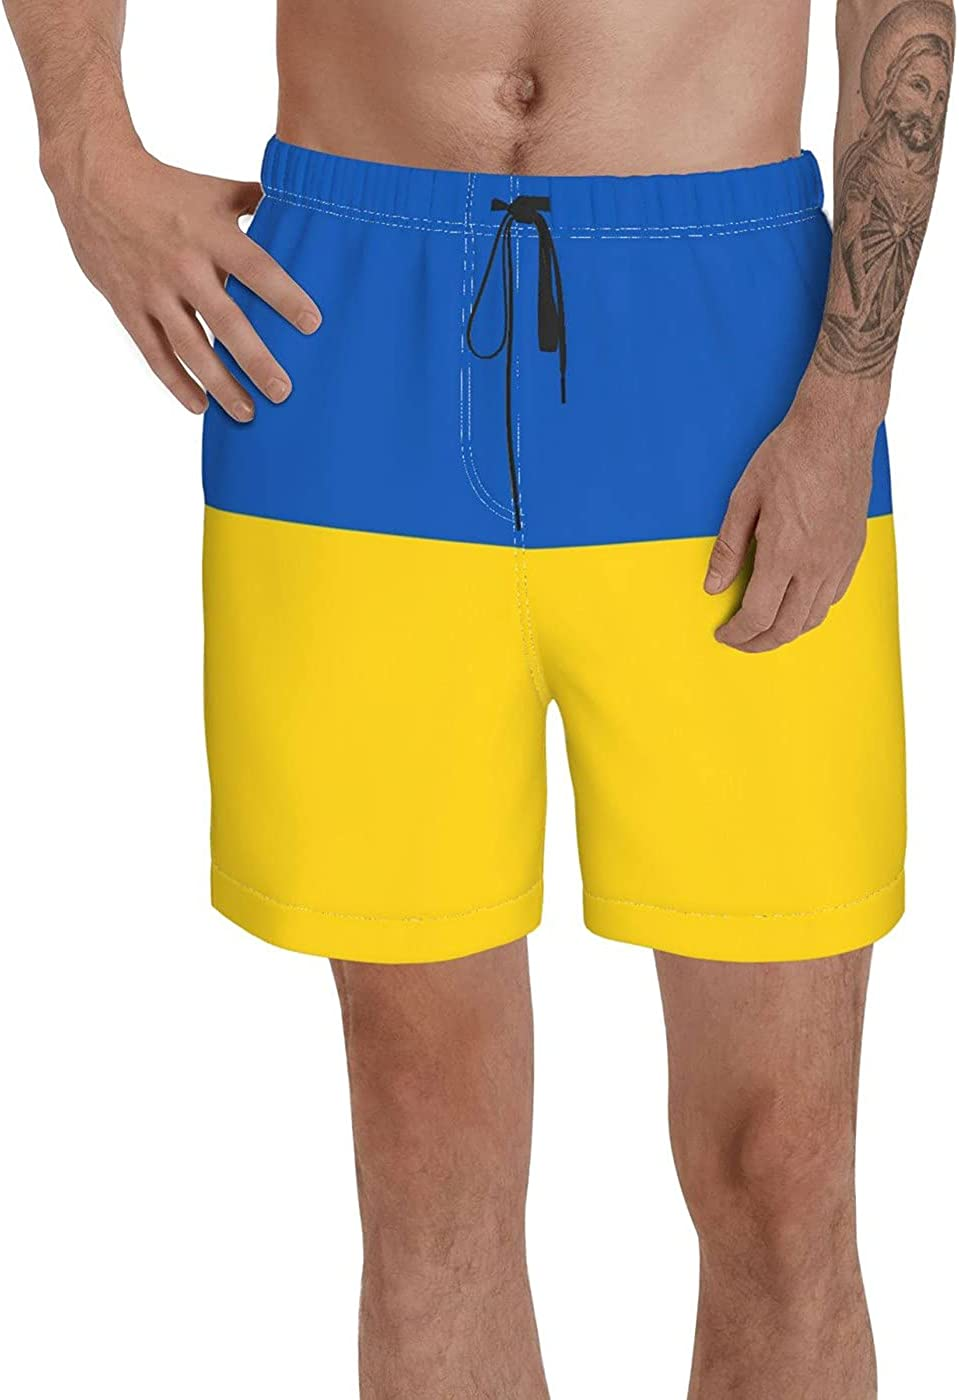 Count Ukraine Flag Men's 3D Printed Funny Summer Quick Dry Swim Short Board Shorts with